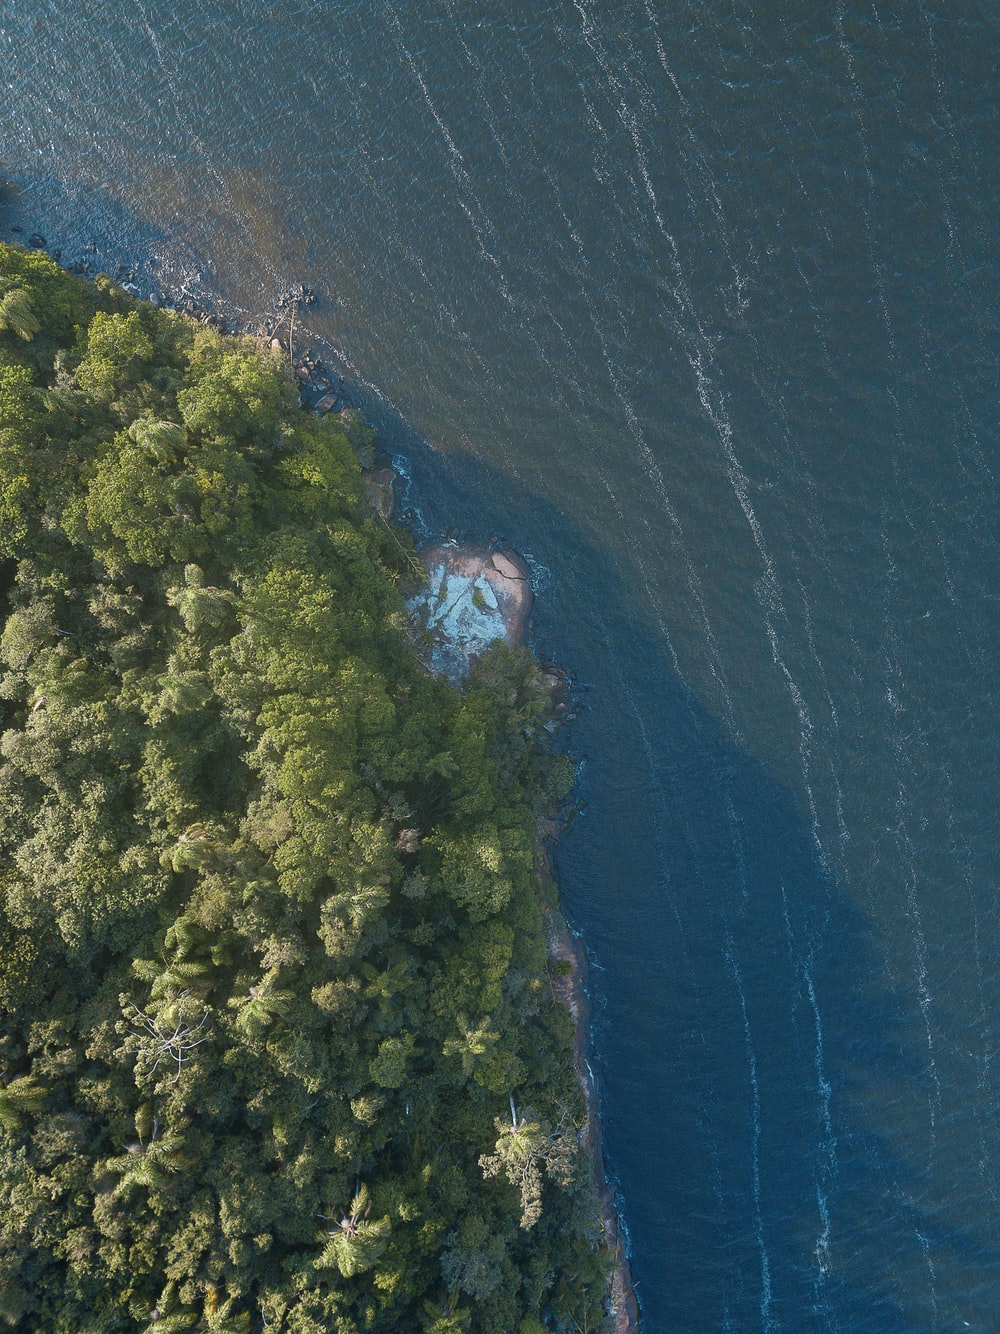 aerial view of trees and body of water